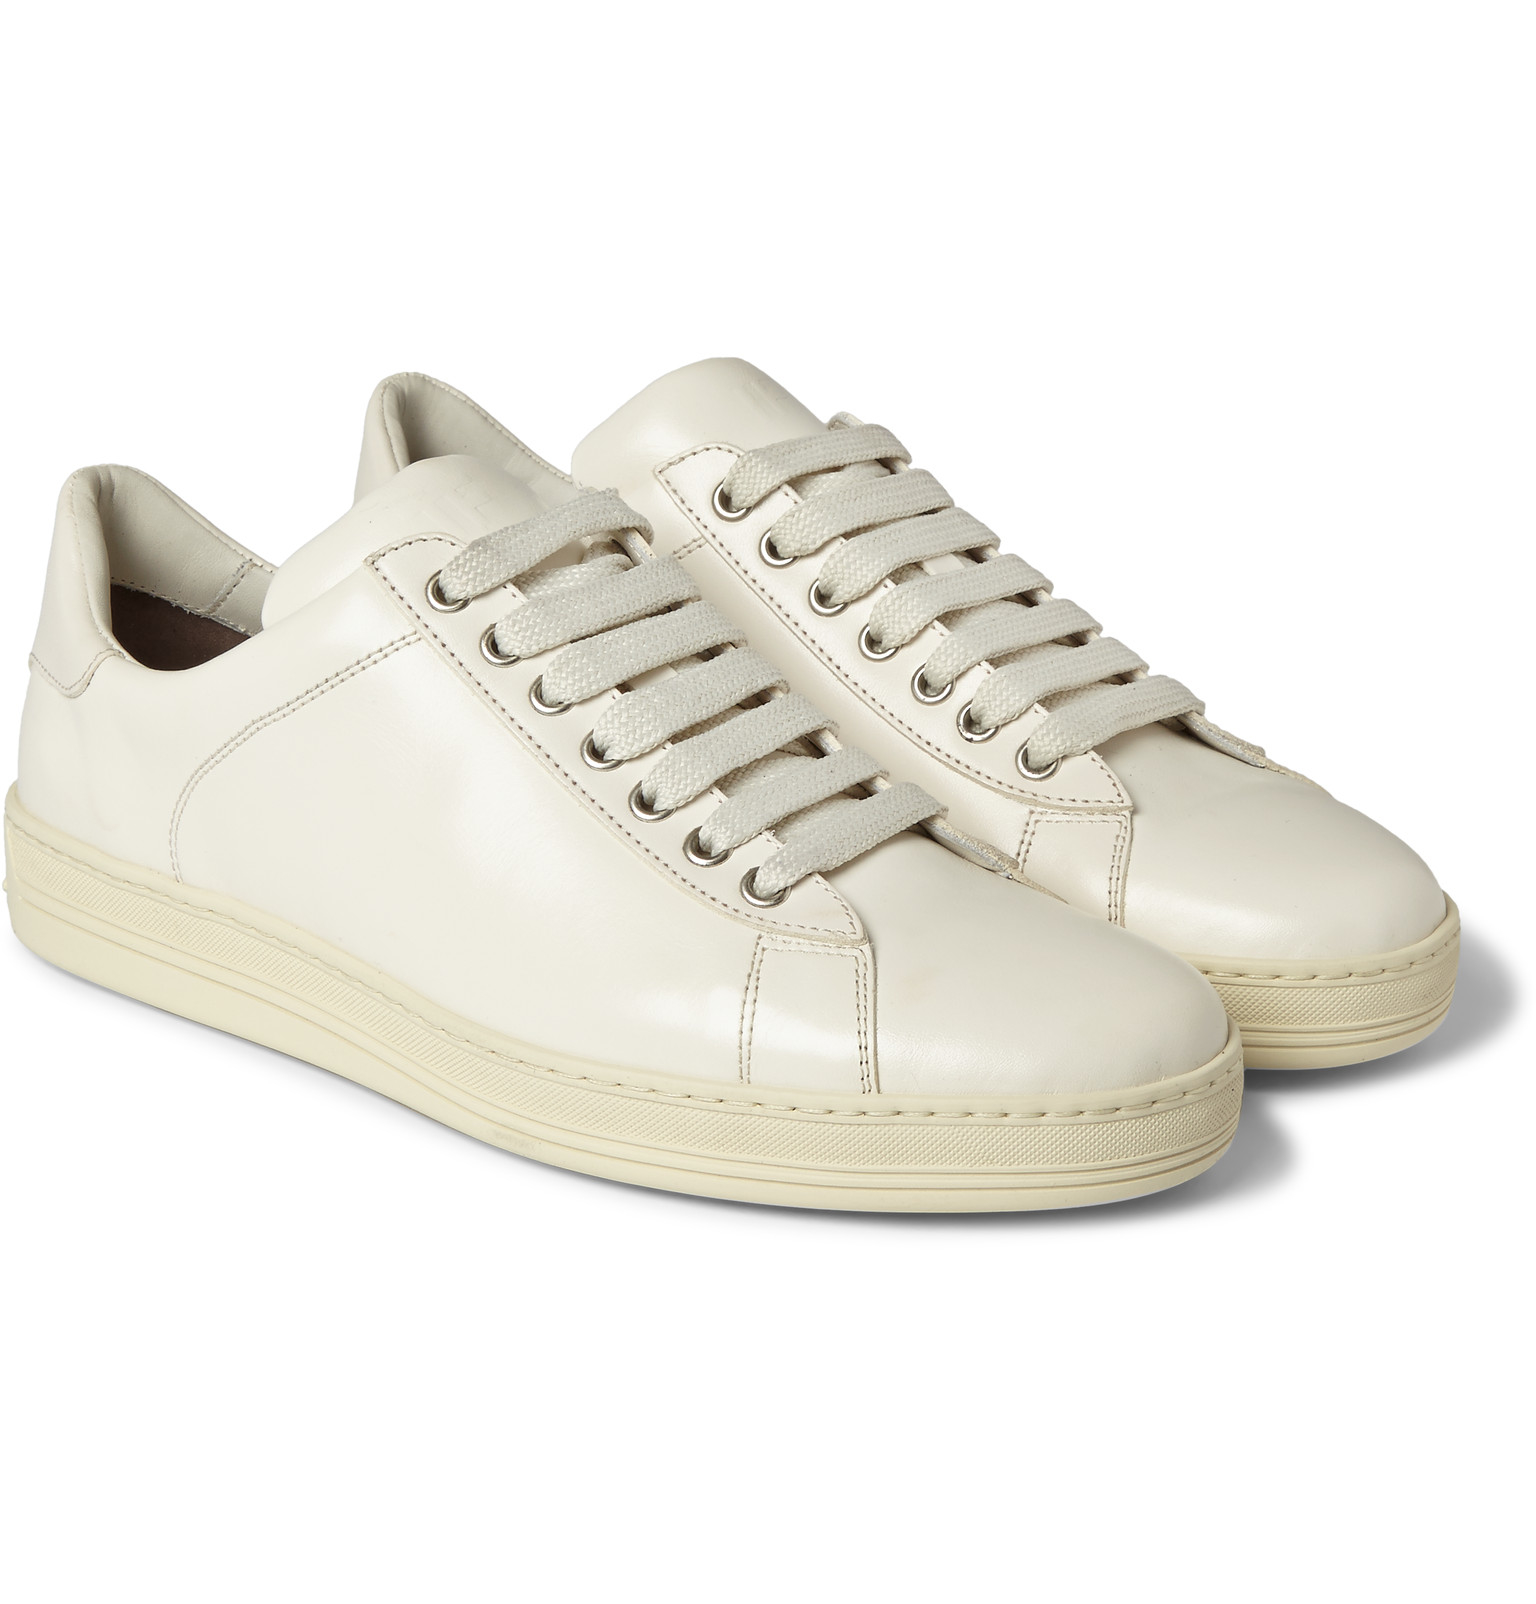 Pre-owned - Python trainers Tom Ford Best Sale Sale Online J8YhsW0